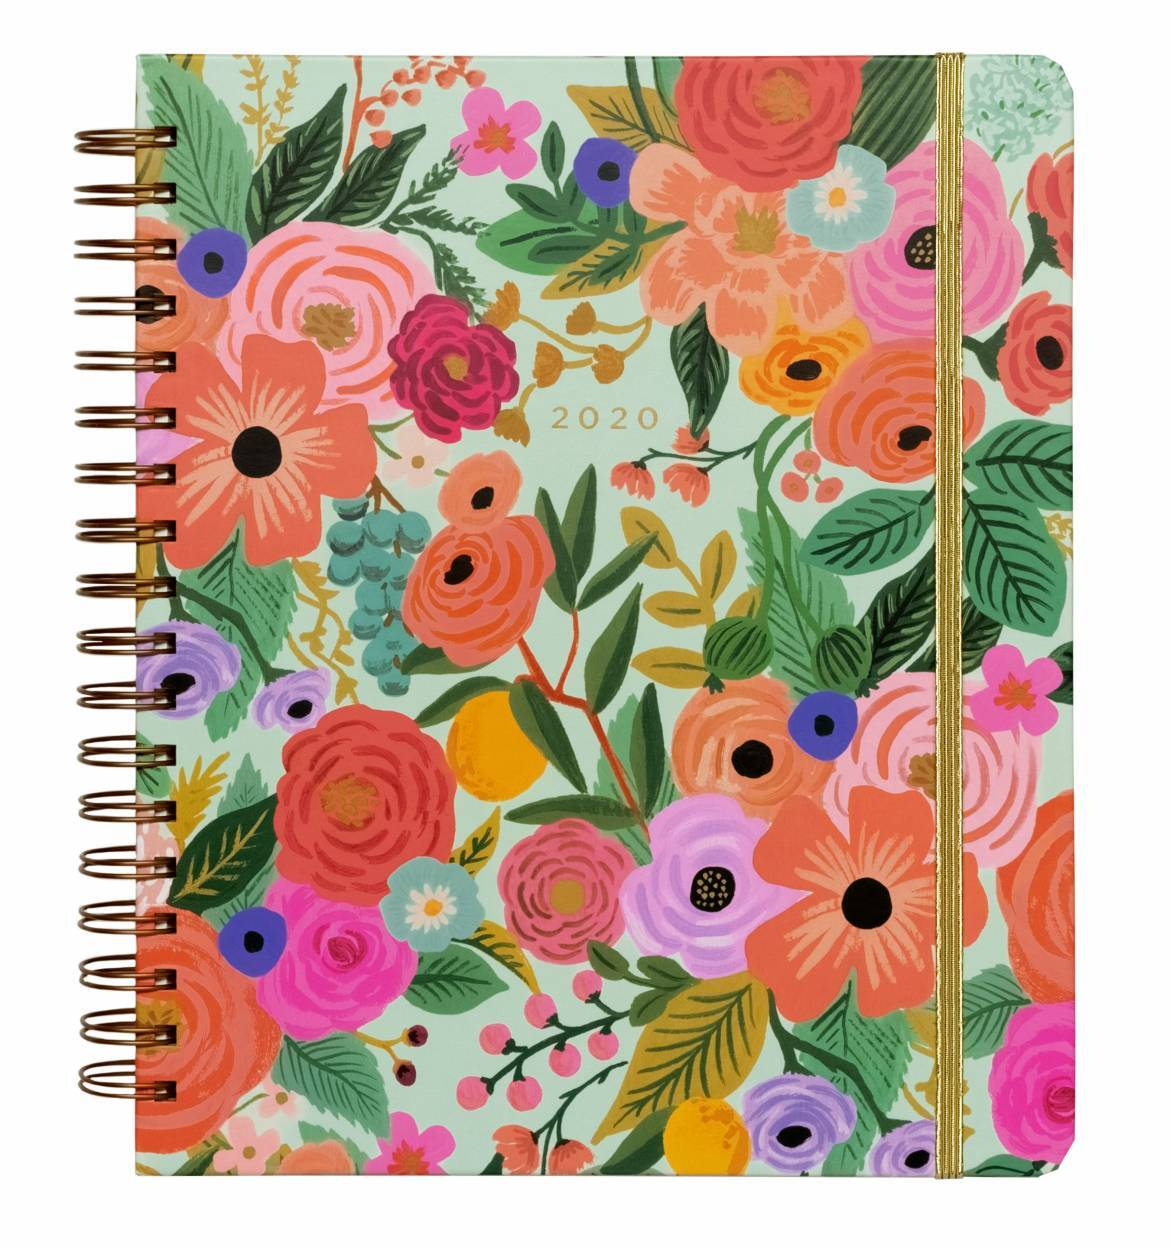 Image For Rifle Paper Co - 2020 Planner - Garden Party